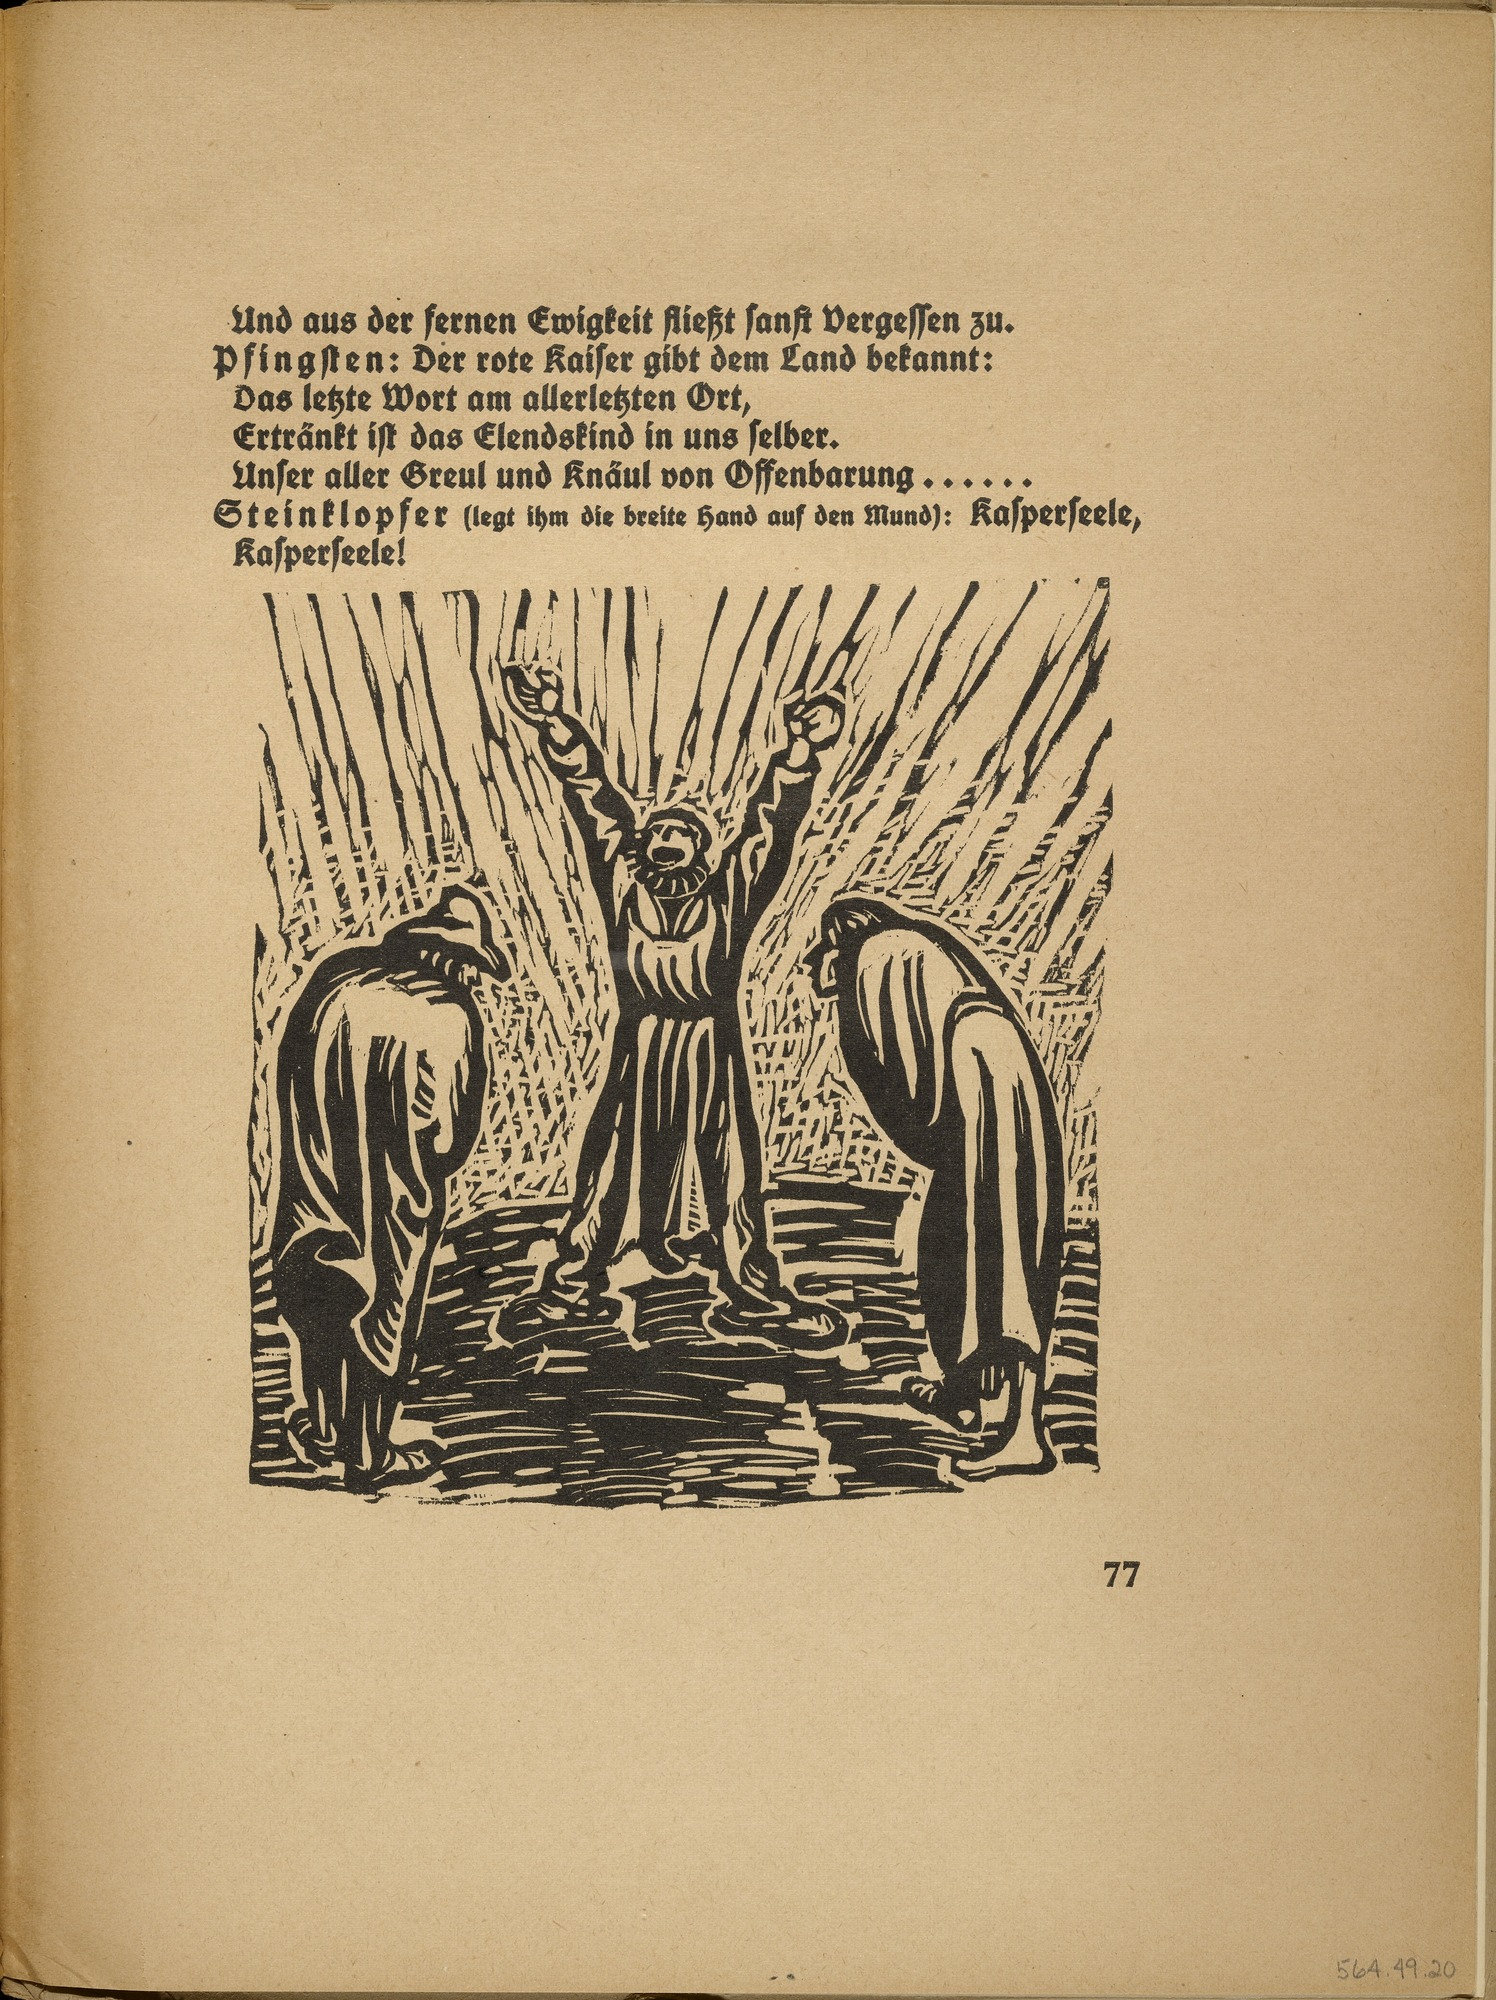 MoMA | The Collection | Ernst Barlach  Away with the Word of